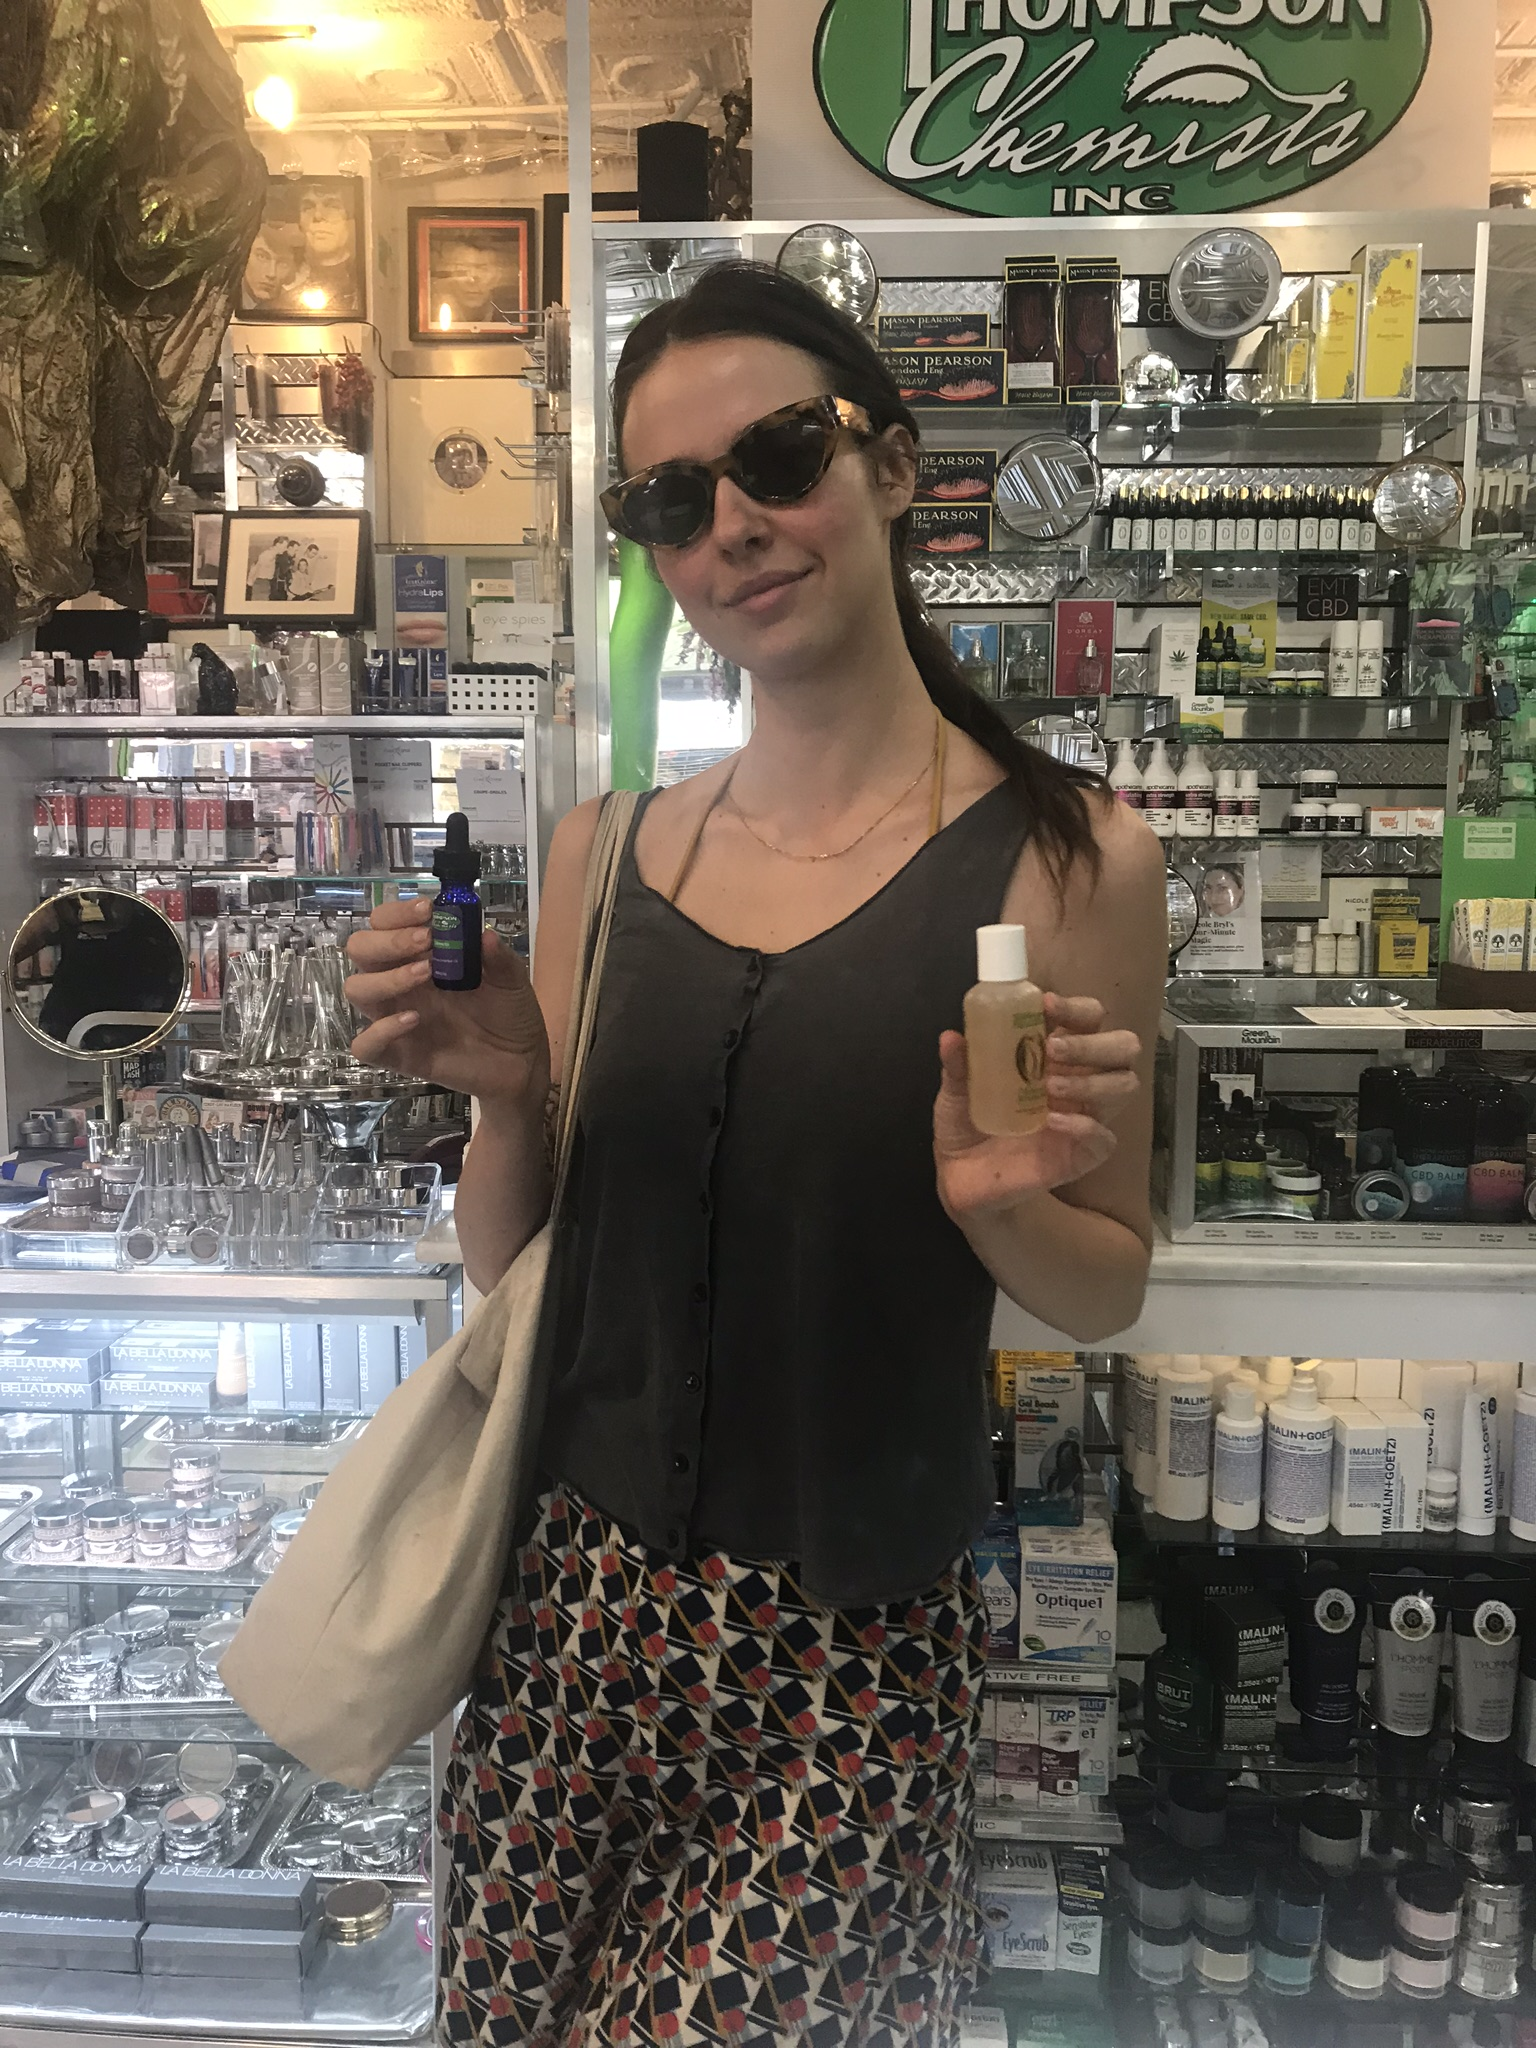 Pretty lady holding Thompson Alchemists body products